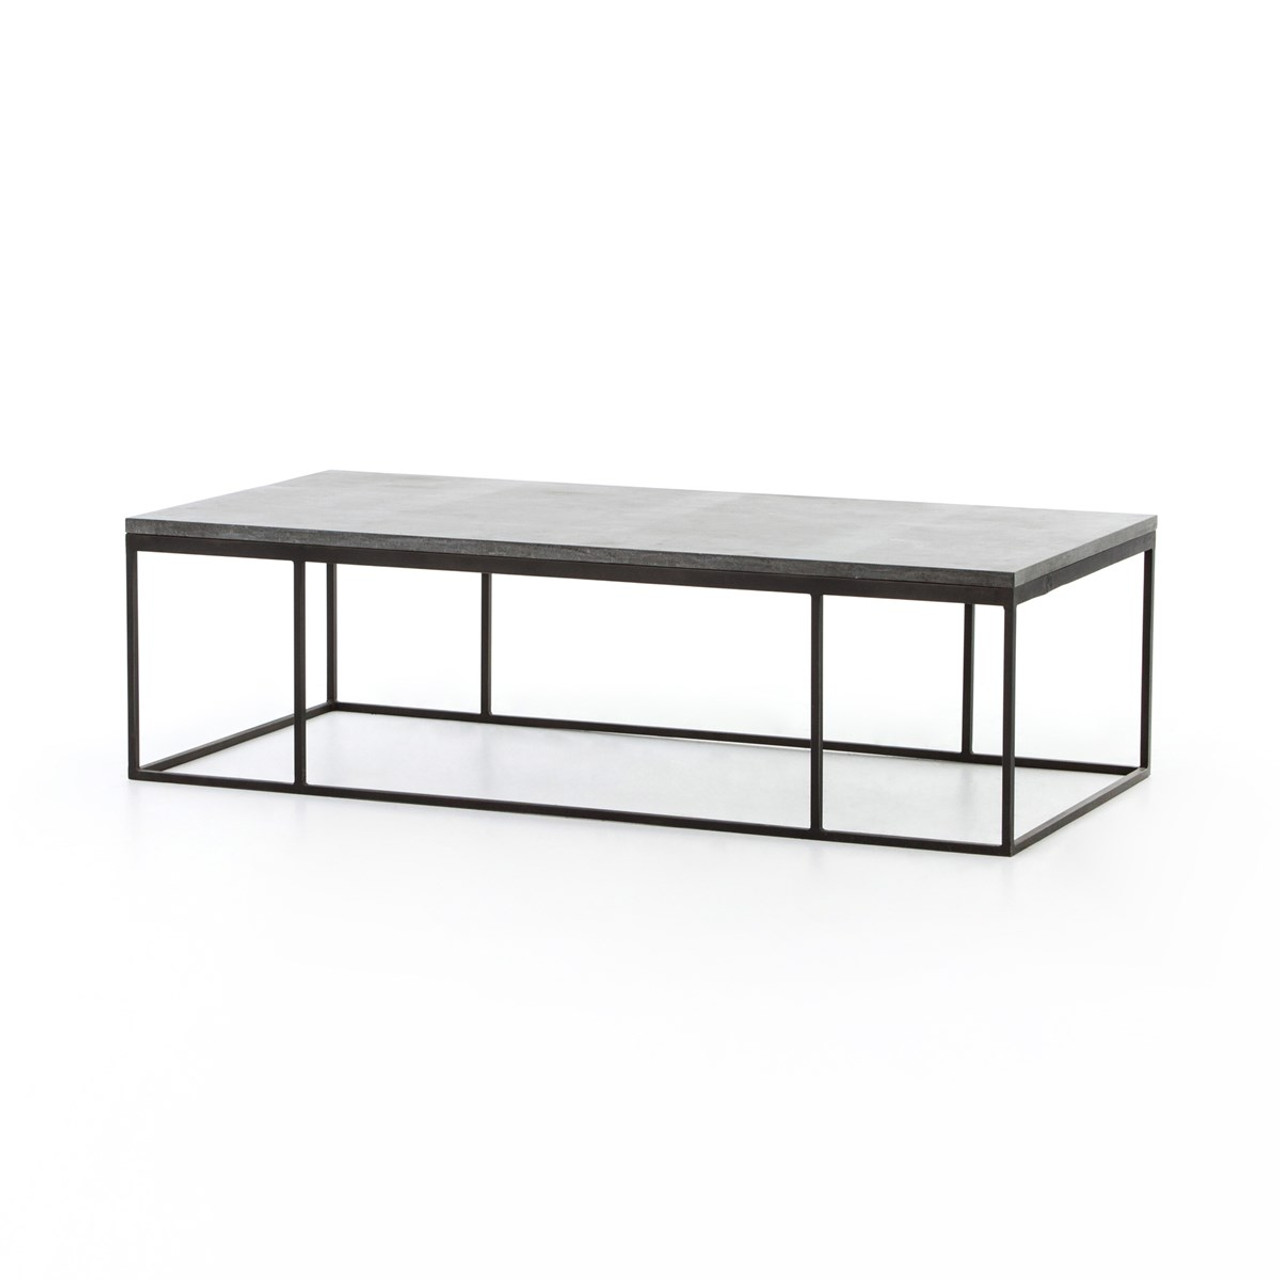 French industrial iron bluestone top coffee table zin home french industrial iron bluestone top coffee table geotapseo Image collections